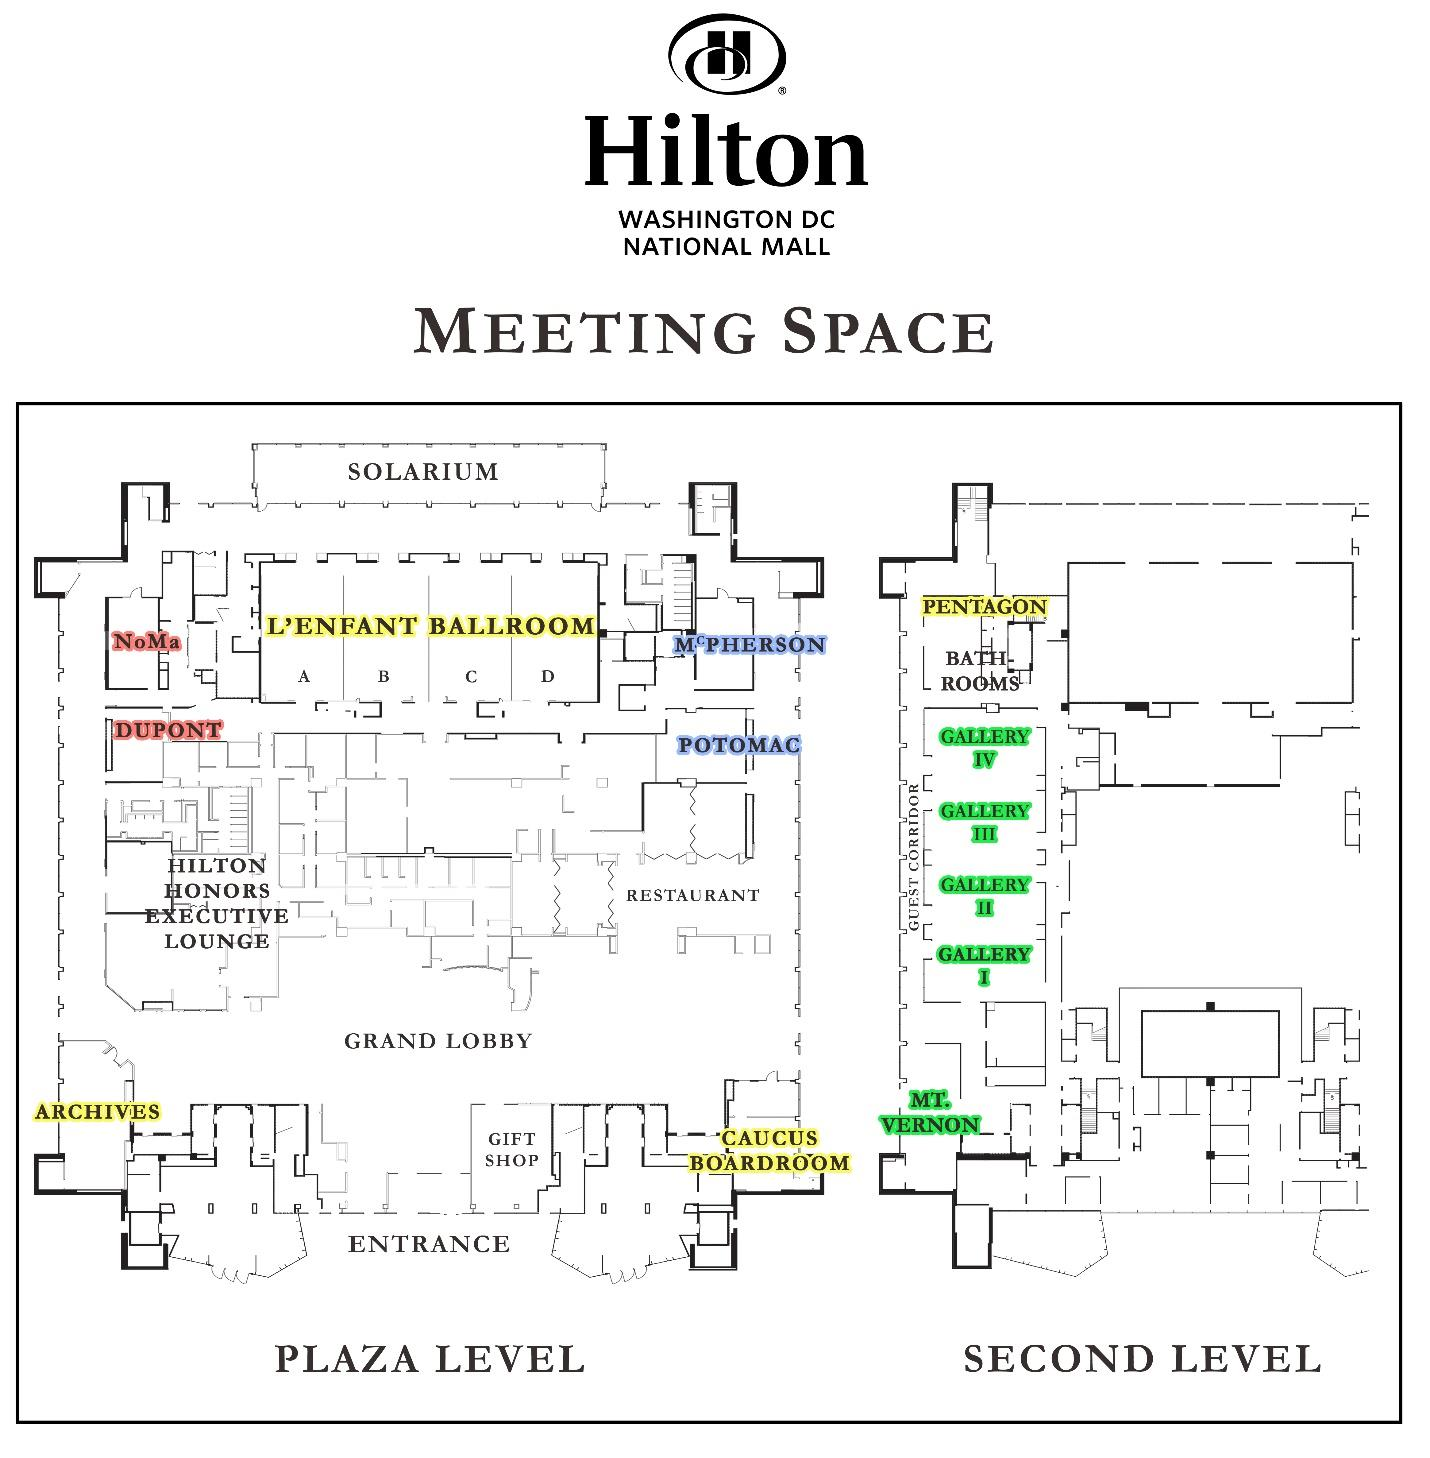 Hilton Hotel Meeting Space Map